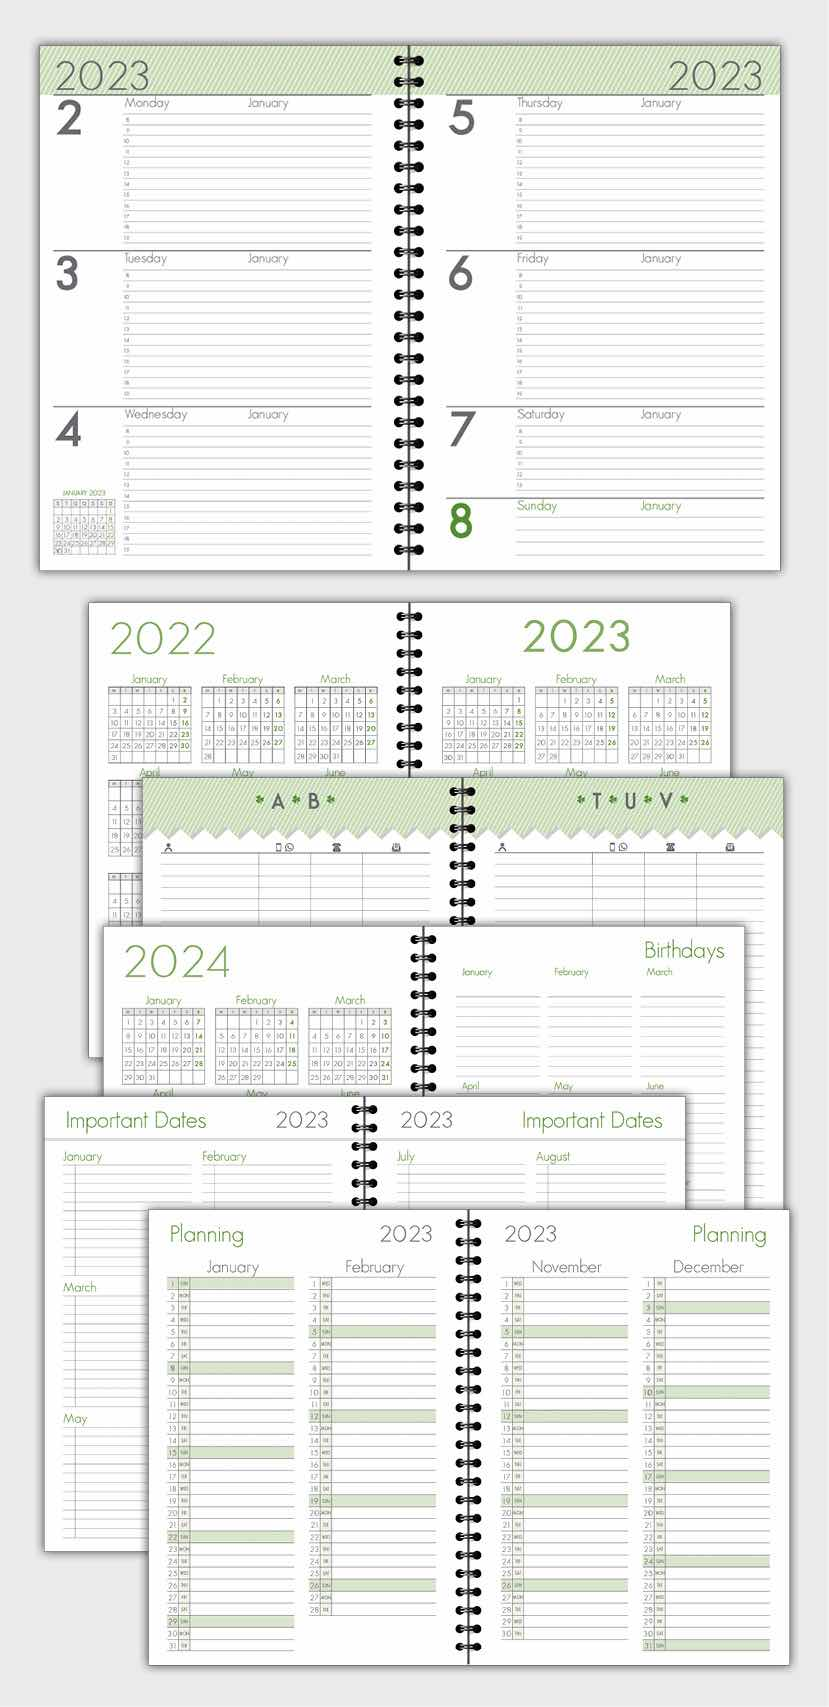 2021 DAILY PLANNER AGENDA TEMPLATE MODEL ATD23